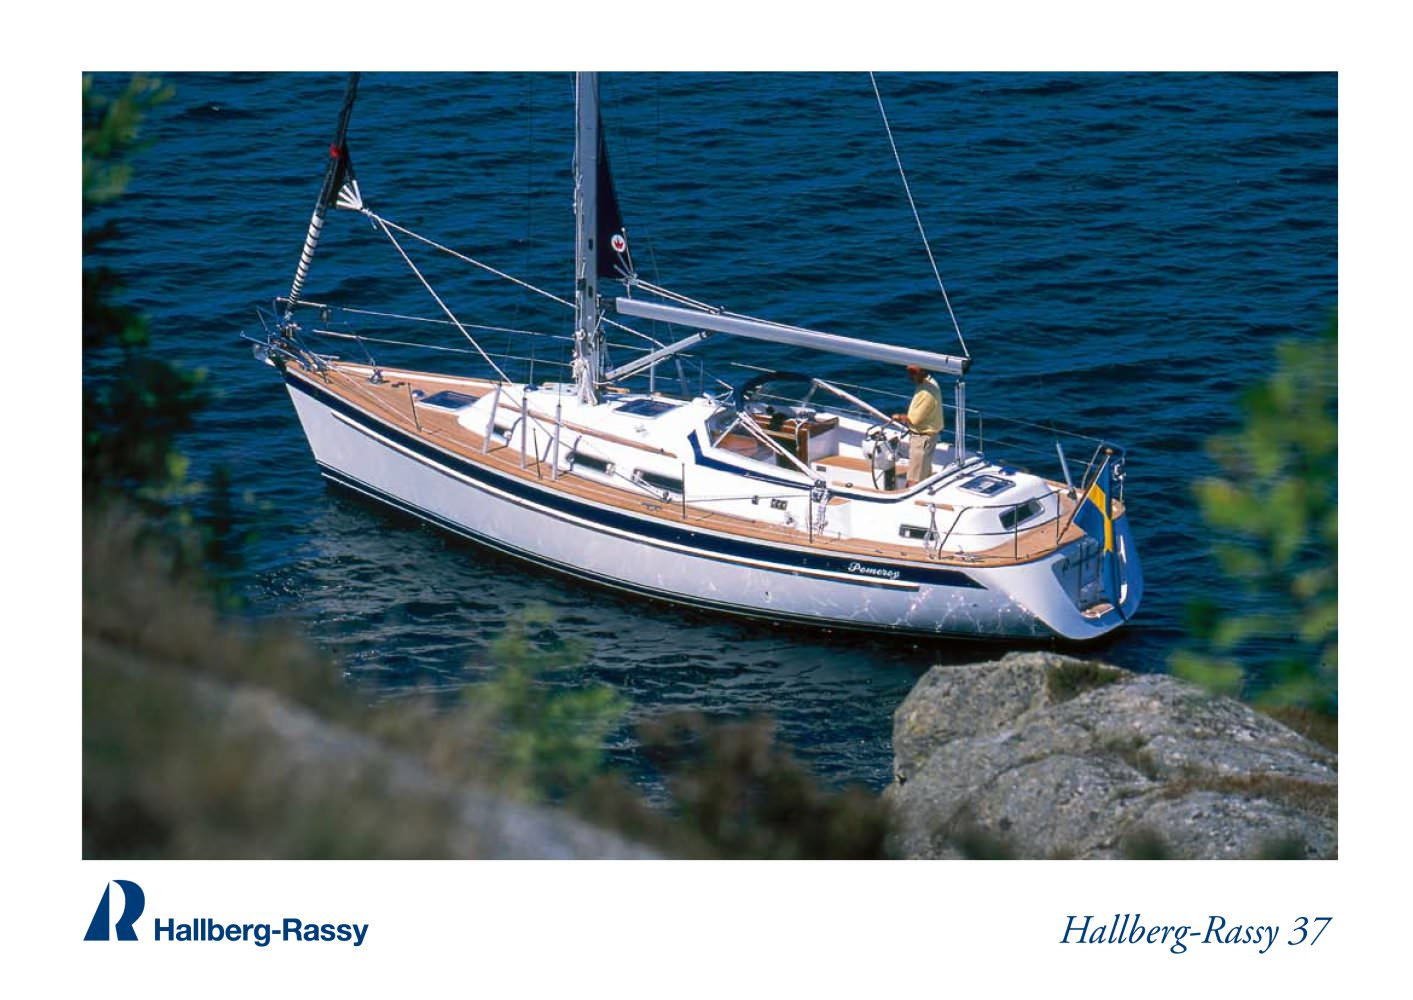 HR 37 - Hallberg-Rassy. See other catalogues for Hallberg-Rassy